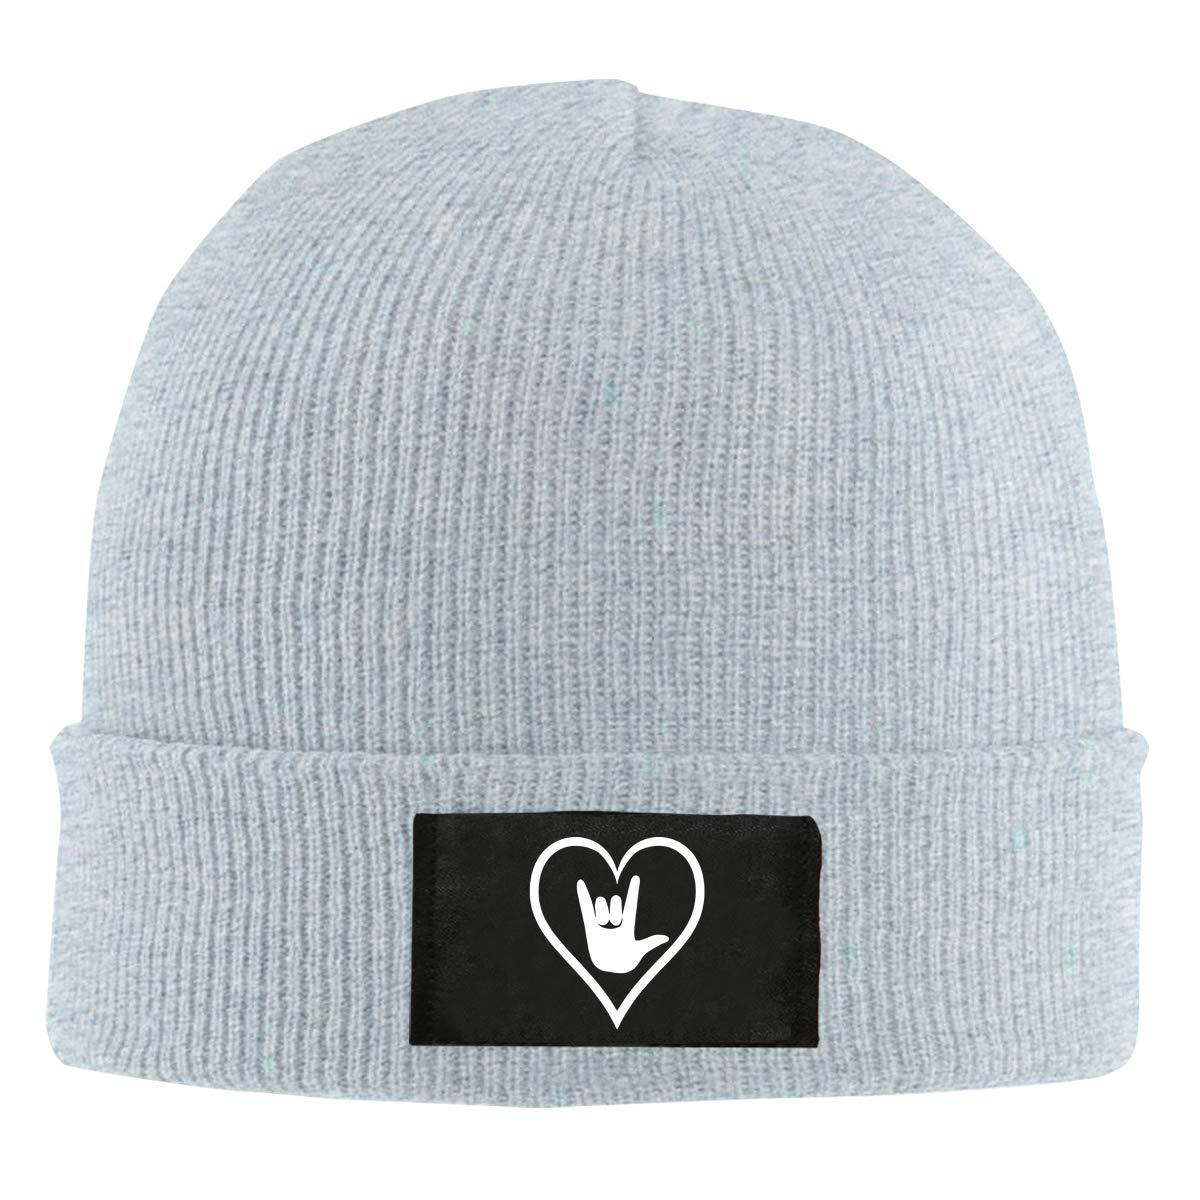 I Love You Men /& Womens Knitted Hat Fashion Warm Fleece Beanie Hat American Sign Language ASL